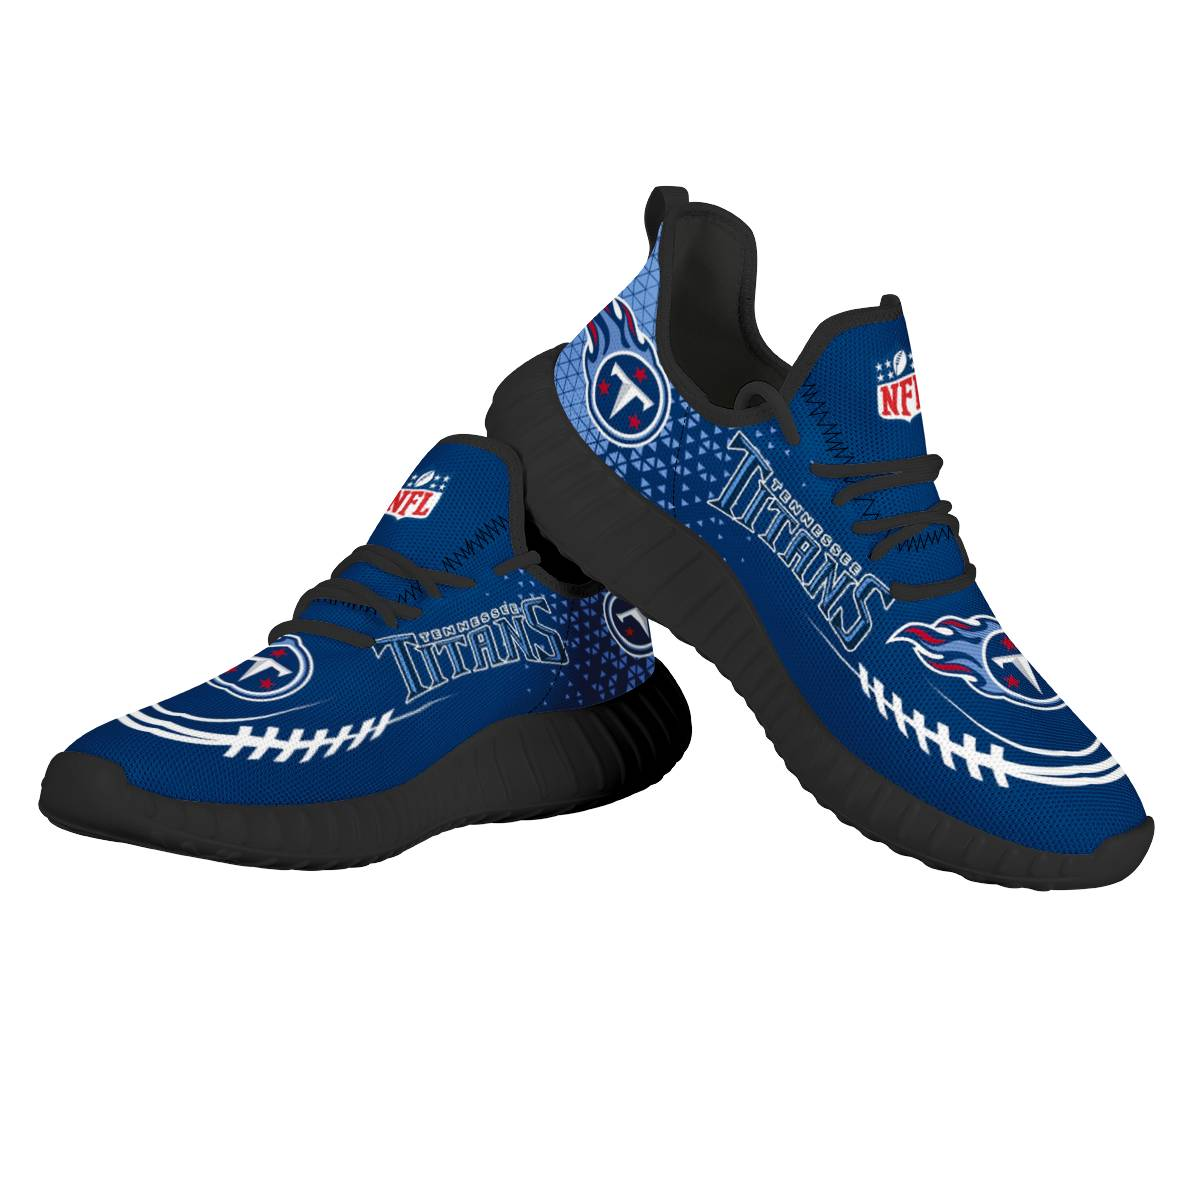 Men's NFL Tennessee Titans Mesh Knit Sneakers/Shoes 001